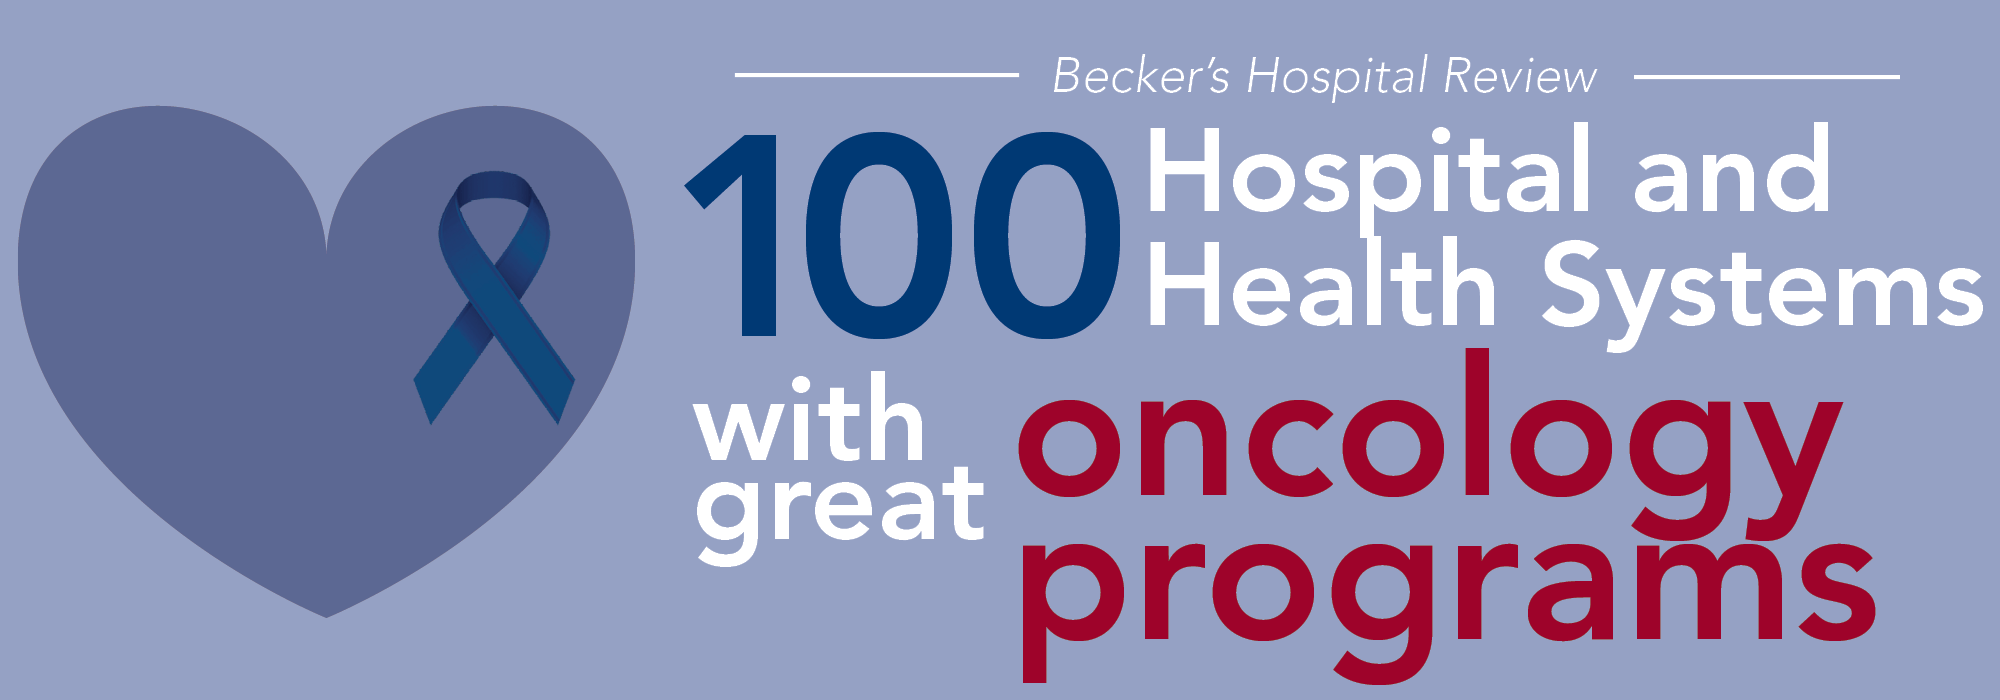 Tisch Hospital Ranking 101 Hospitals And Health Systems With Great Oncology Programs 2016